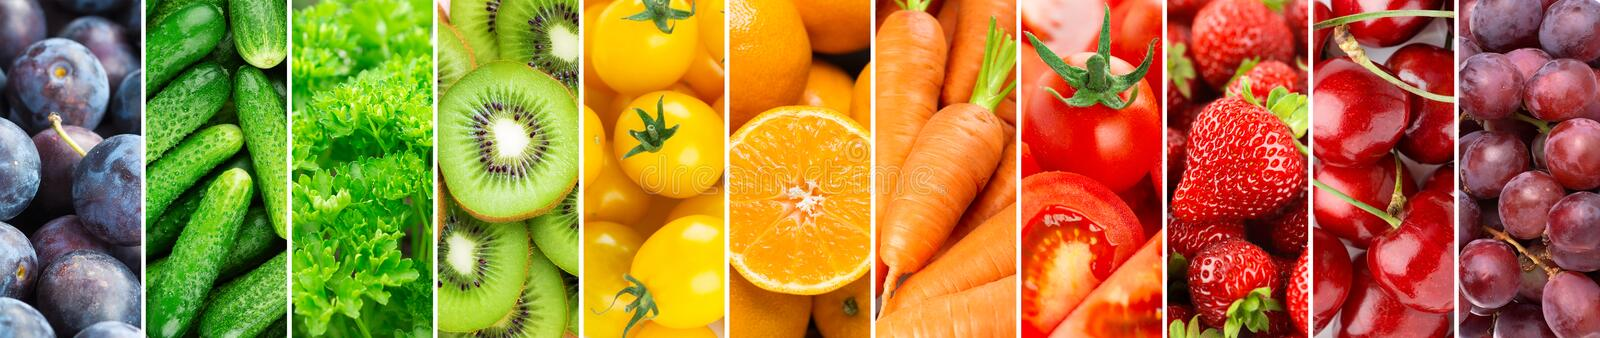 Background of fruits, vegetables and berries royalty free stock photography